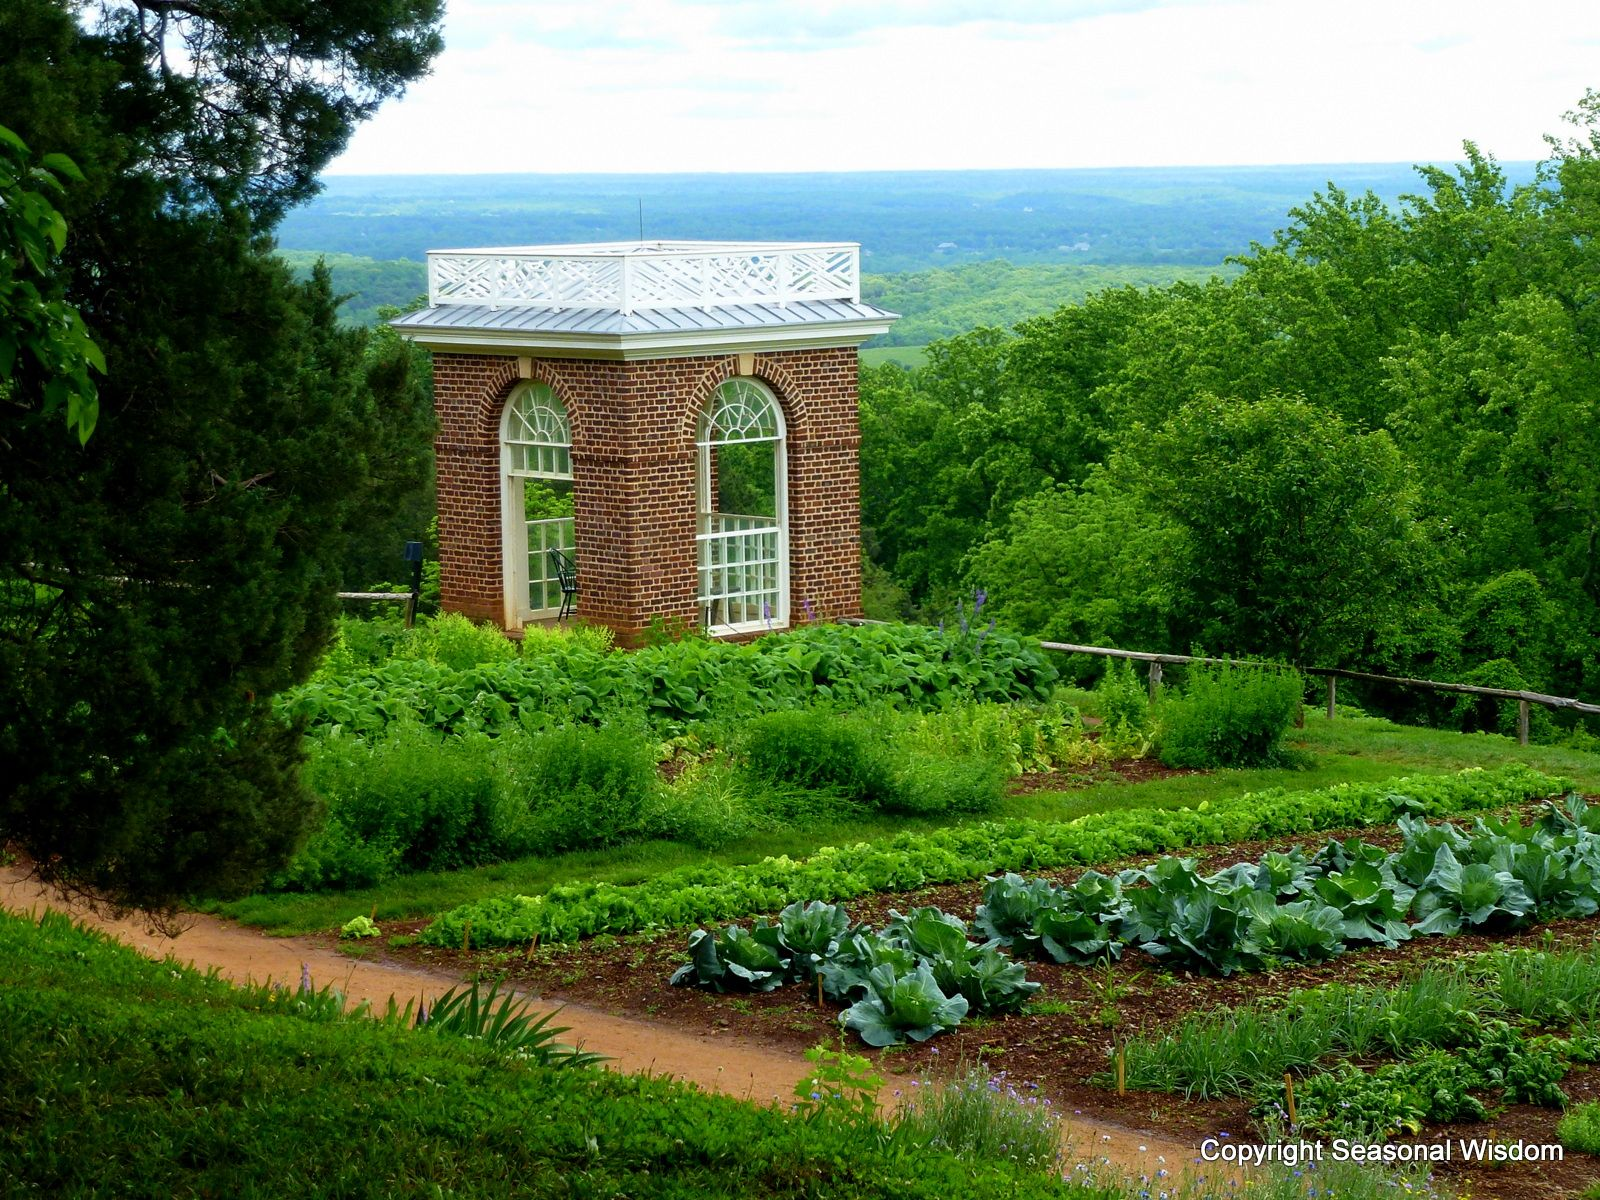 Read About Thomas Jeffersonu0027s Renowned Vegetable Garden At Monticello,  Where He Grew 330 Varieties Of 99 Species Of Vegetables. Interview With The  Man Who ...